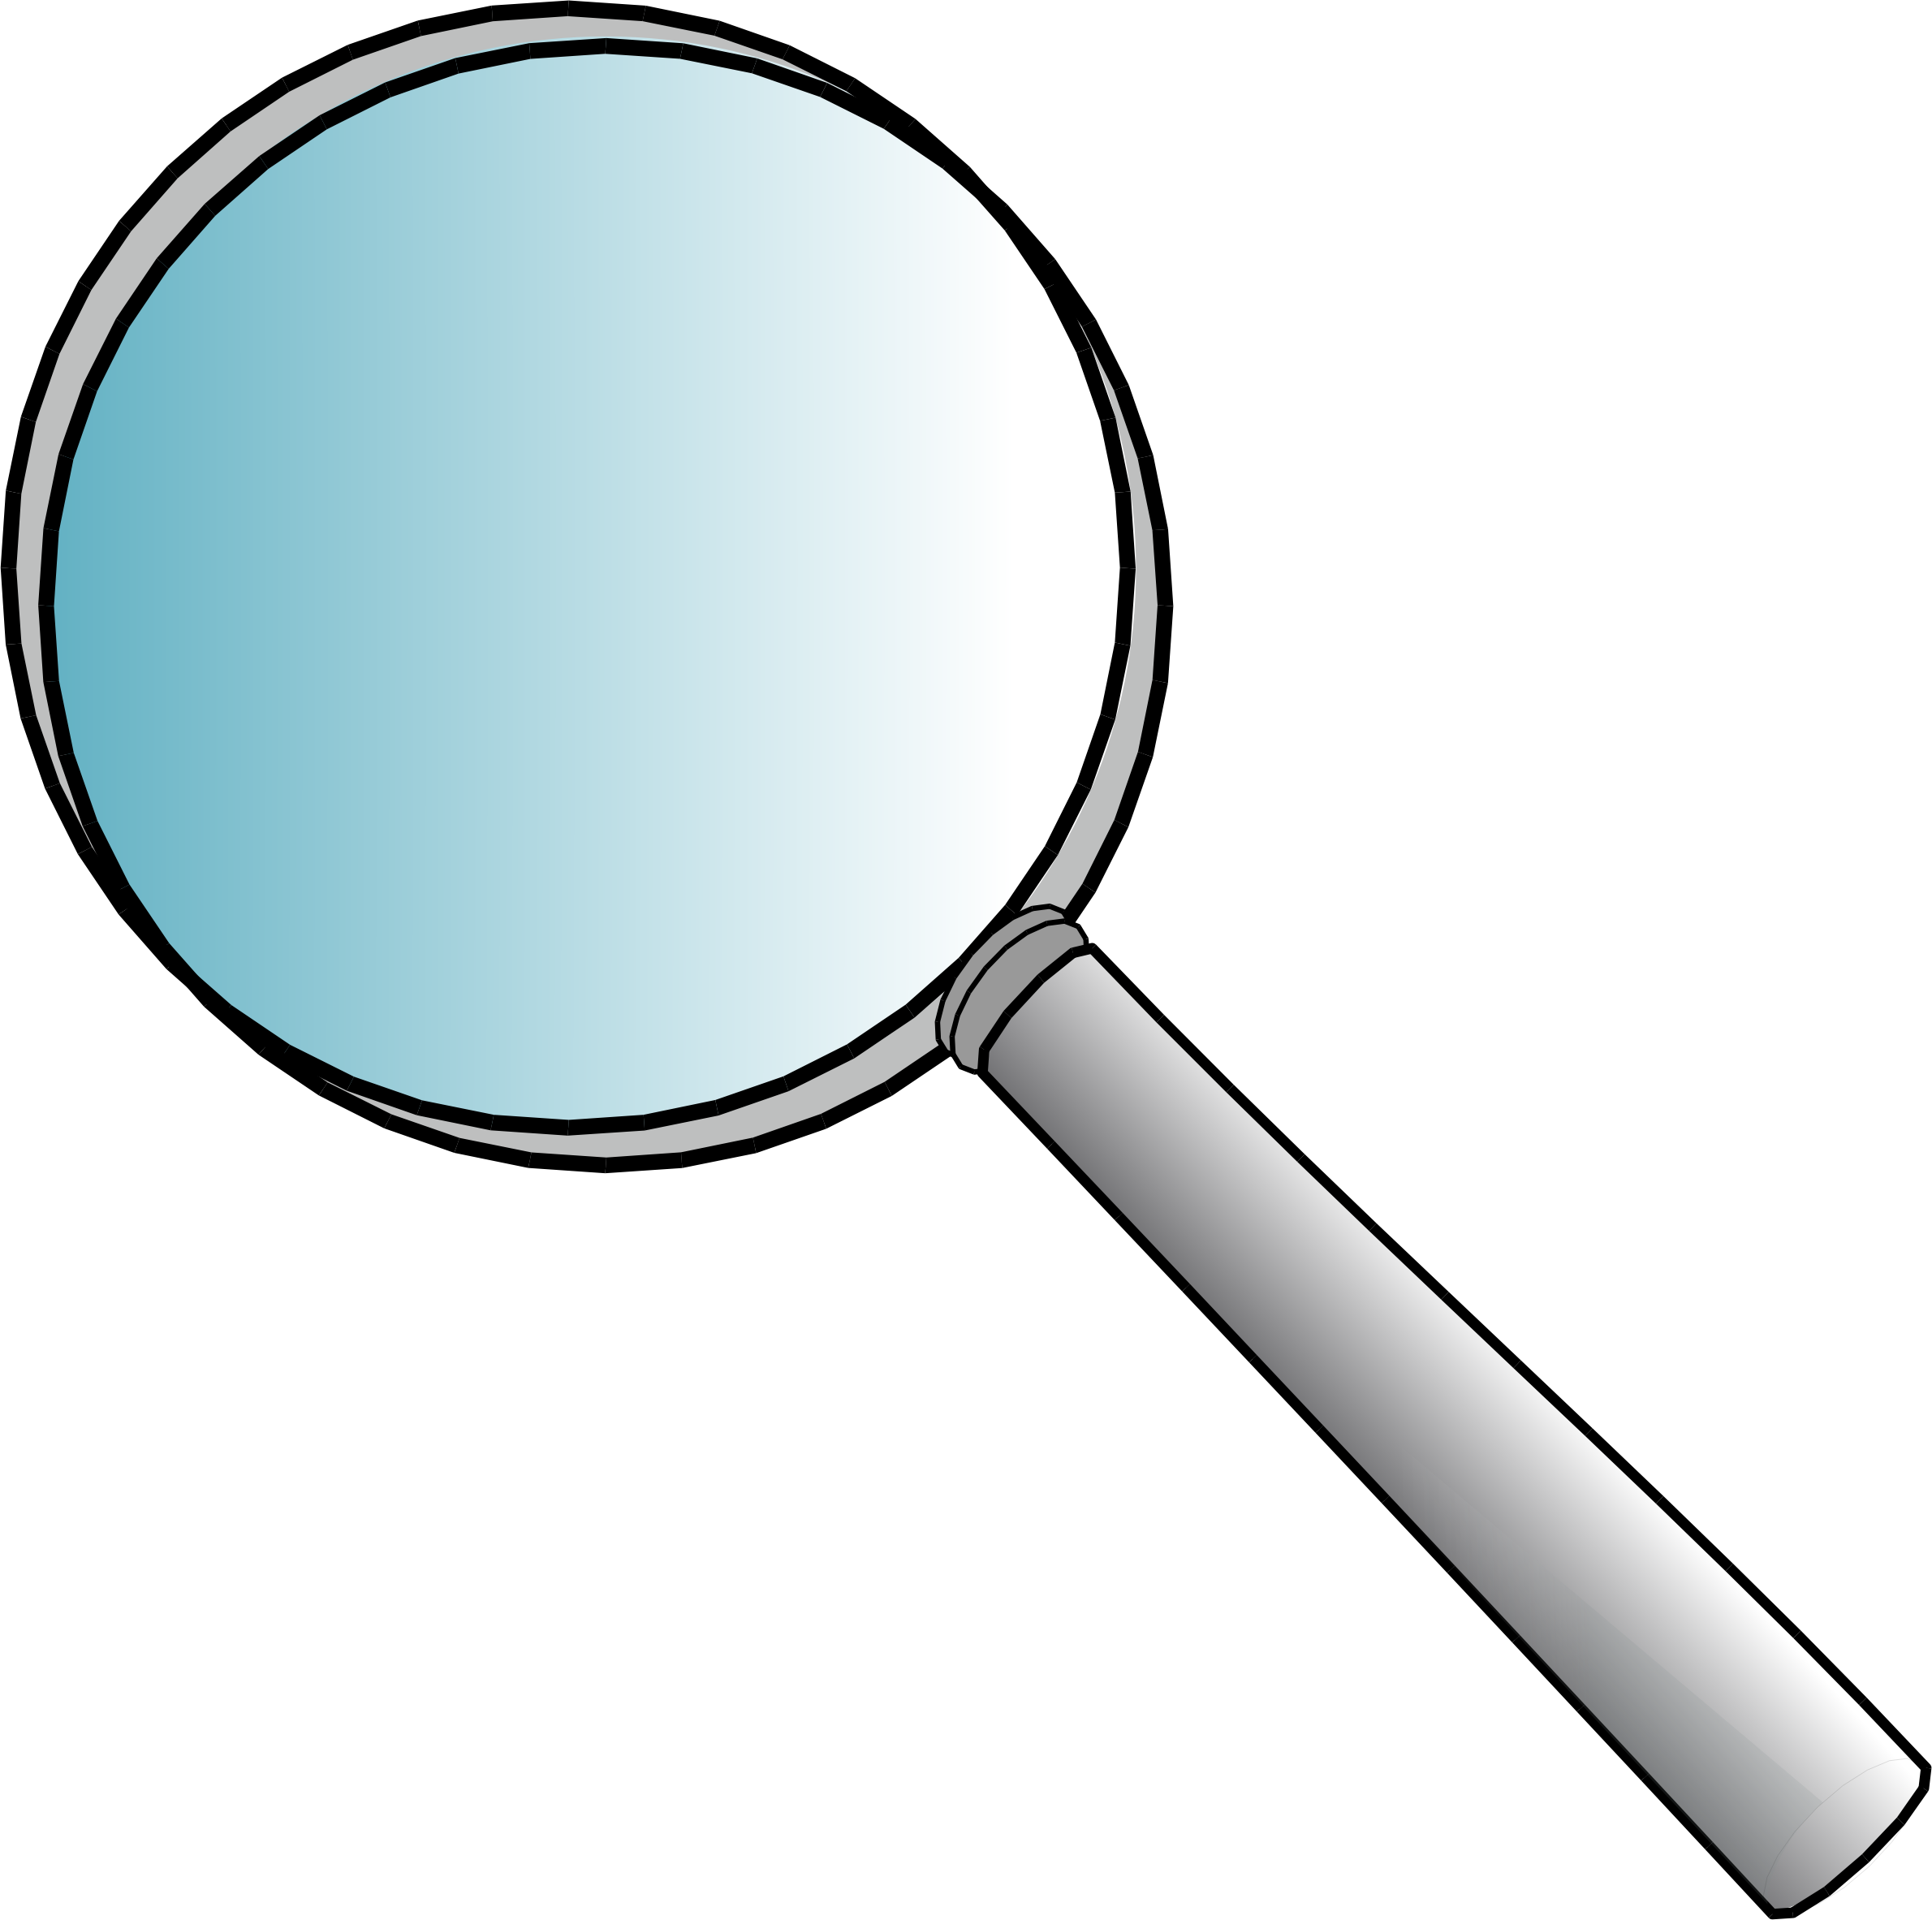 Magnifying glass by Anonymous